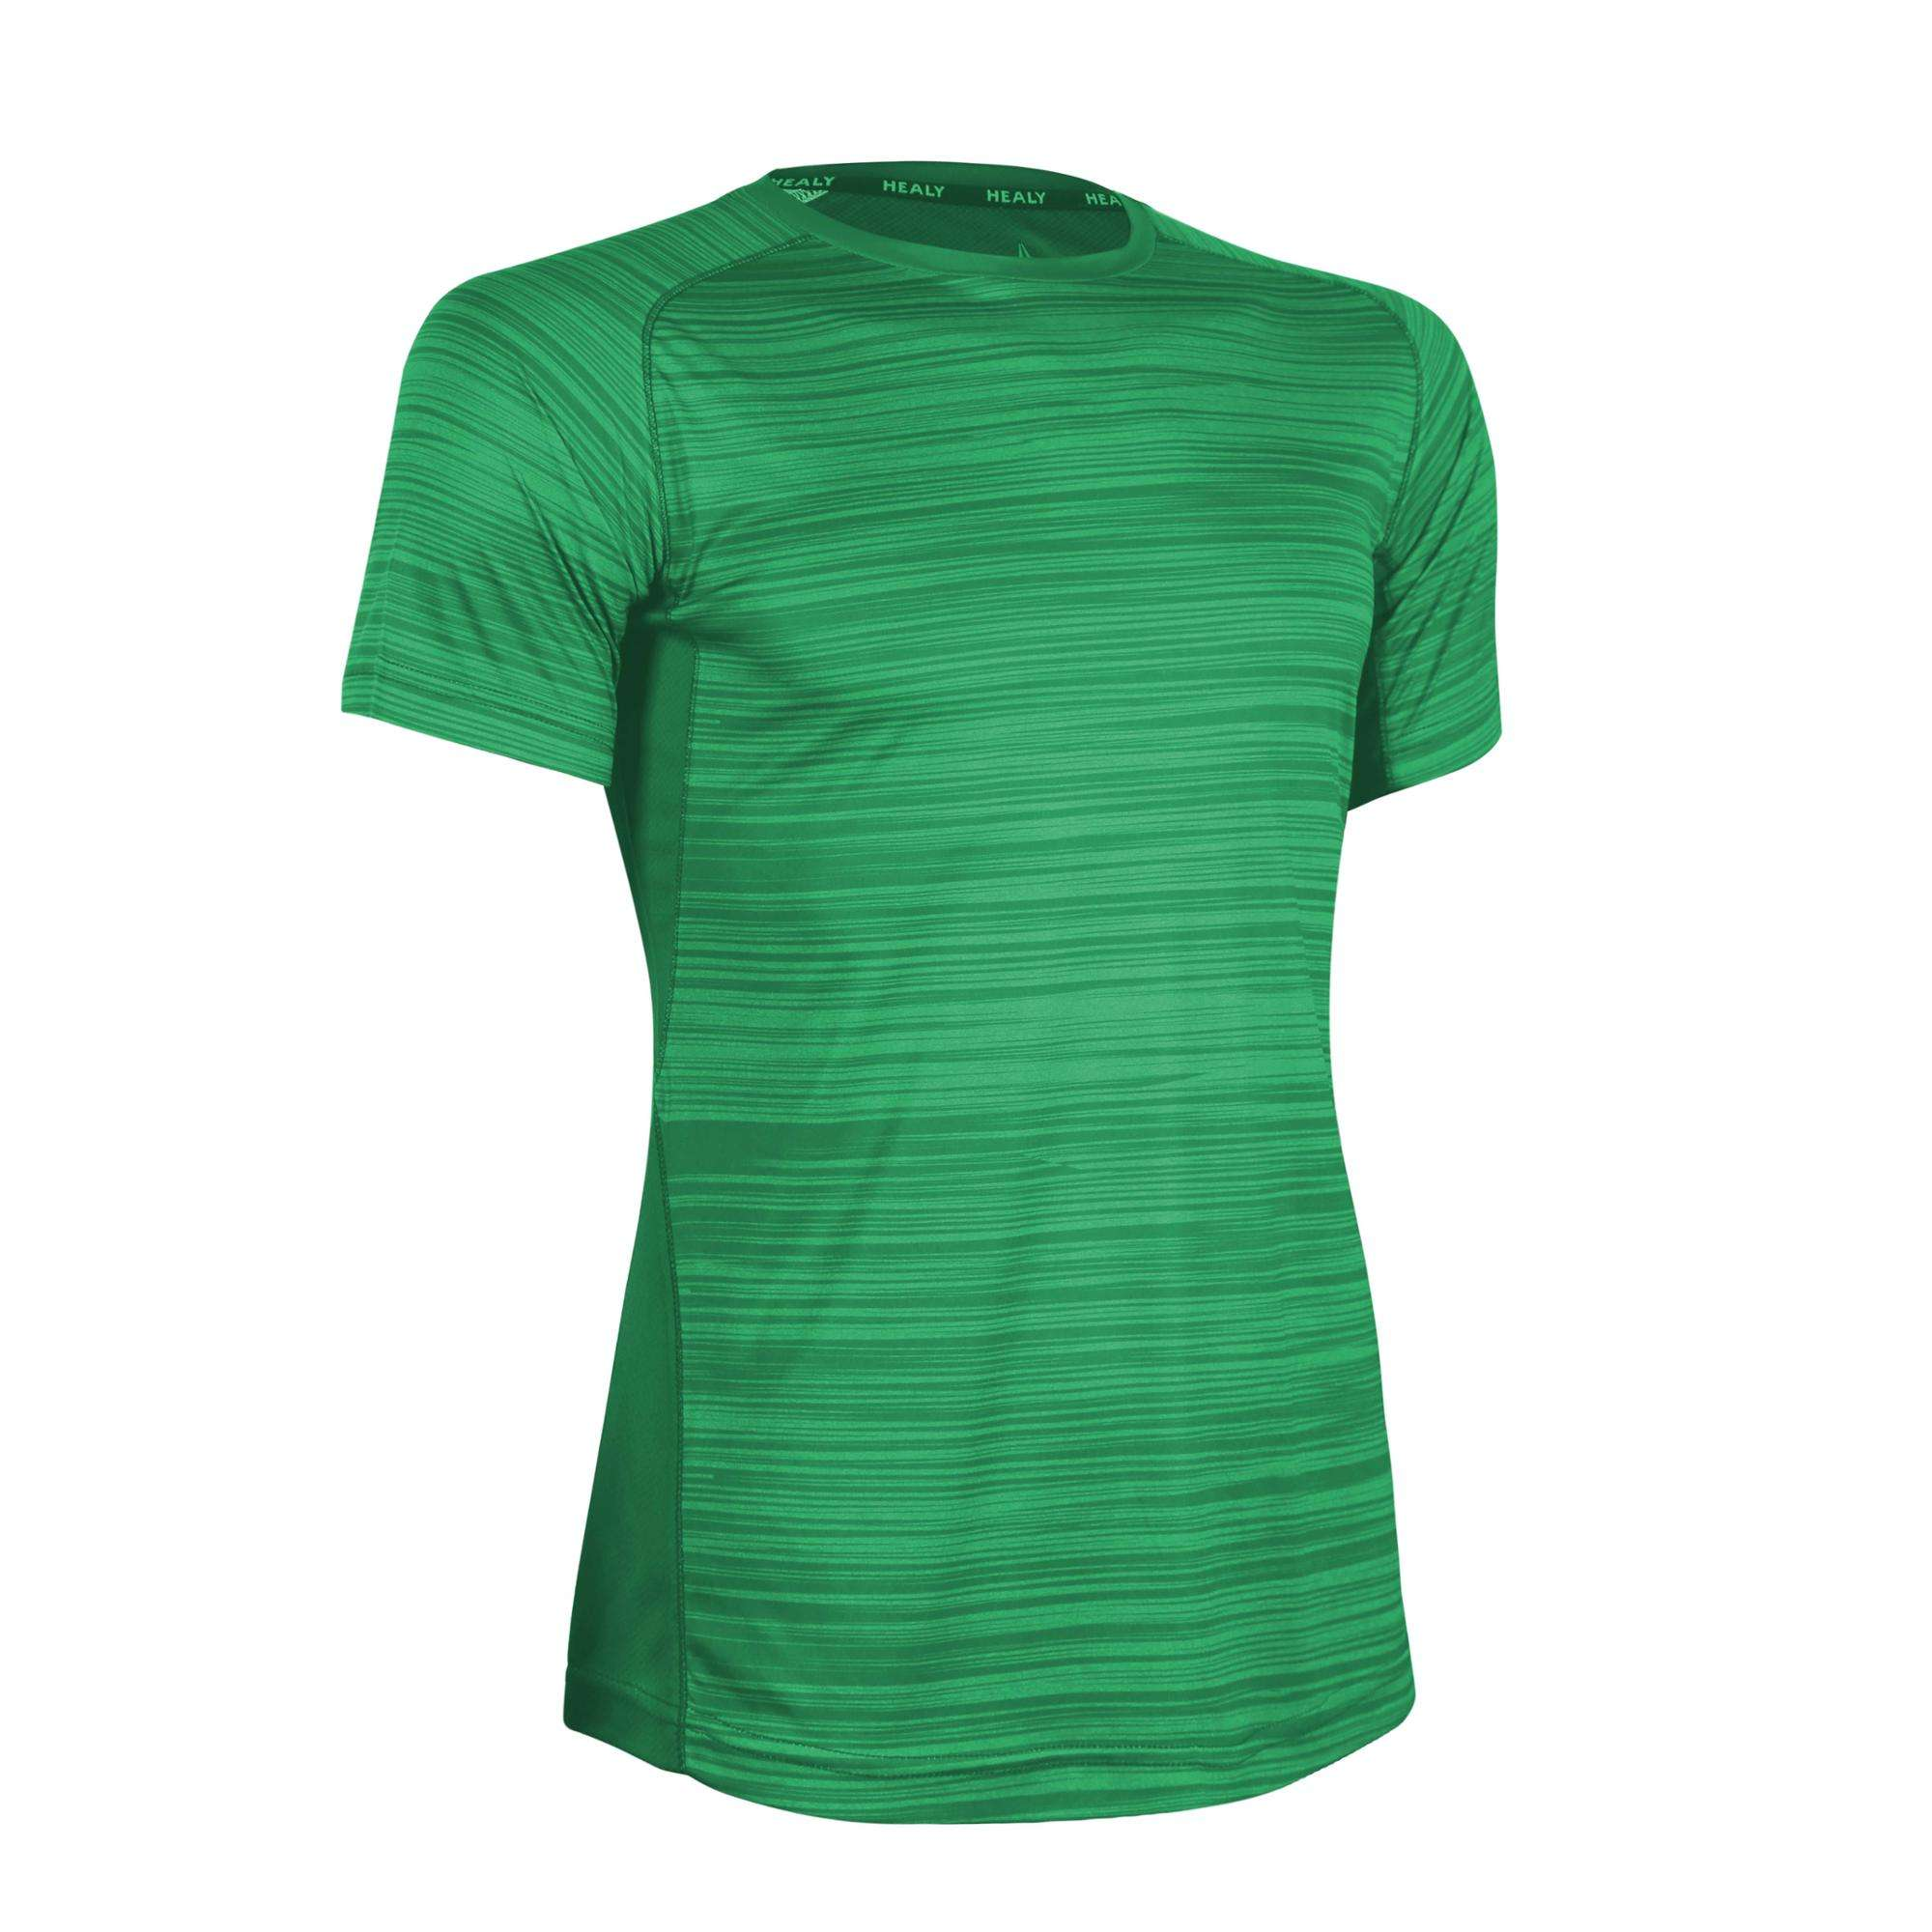 Fitness Clothing Man Green Athletic New Arrival Custom Wear Gym Shirt